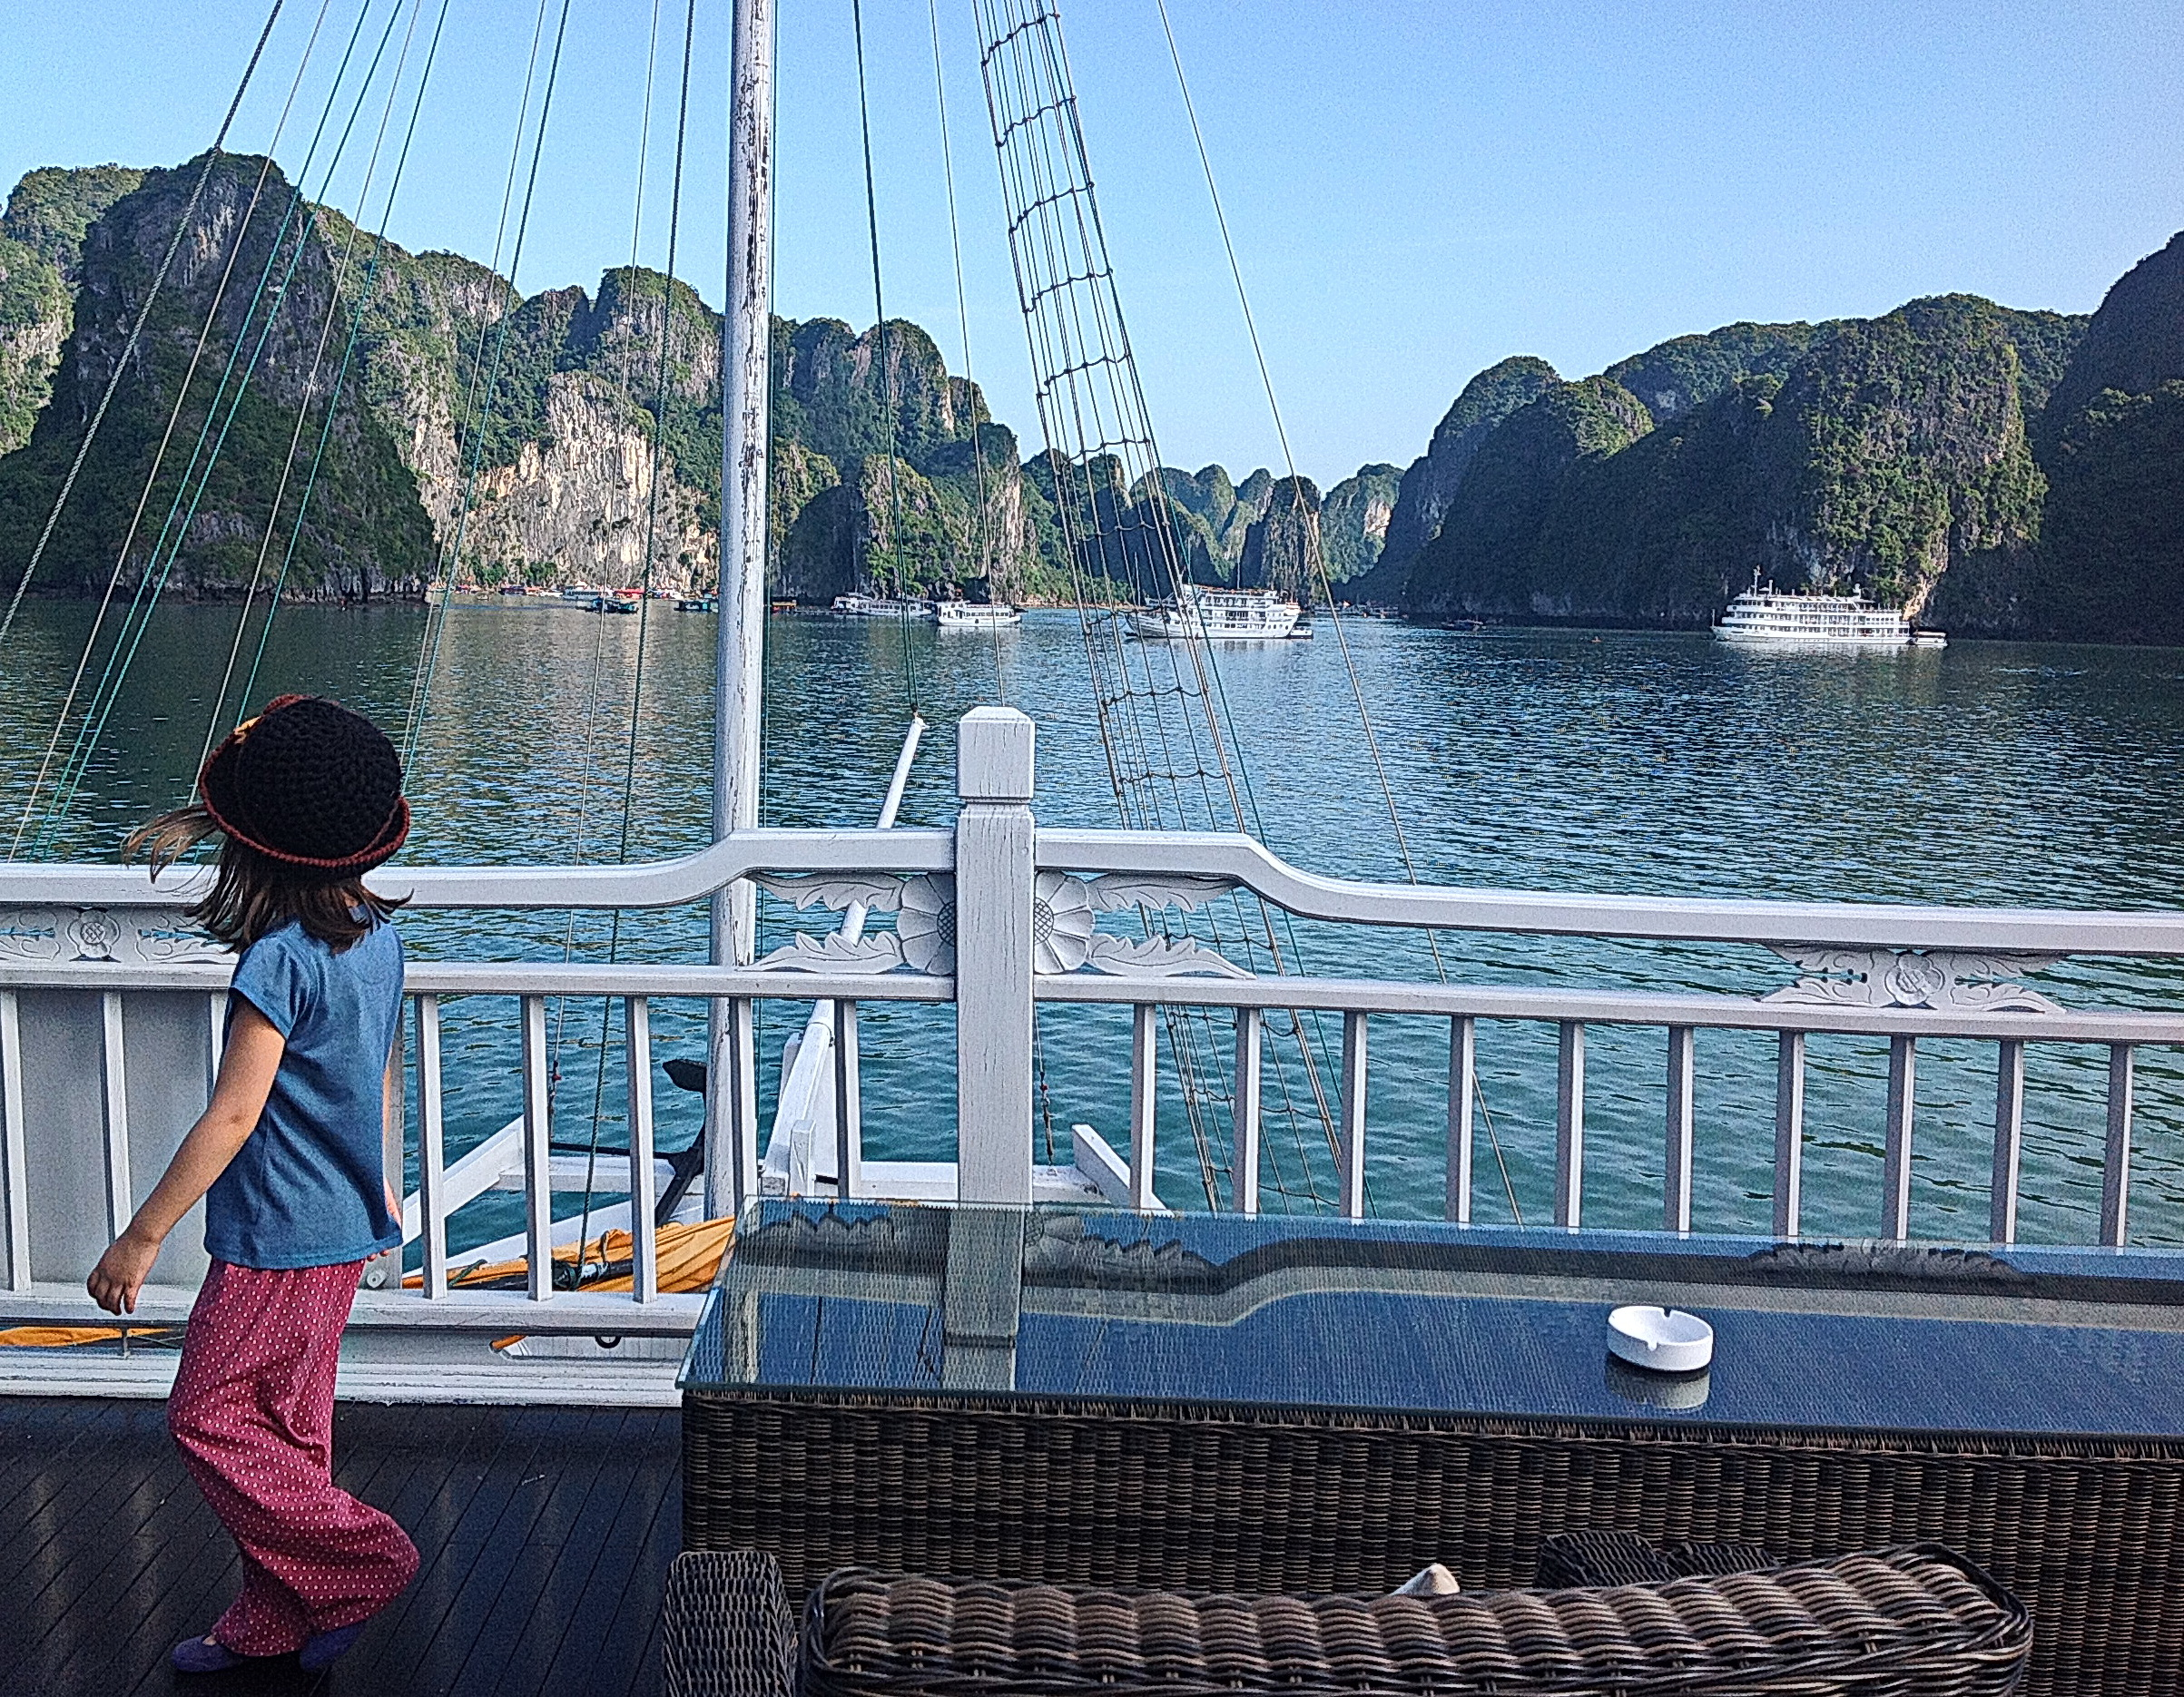 Karsts of Halong Bay